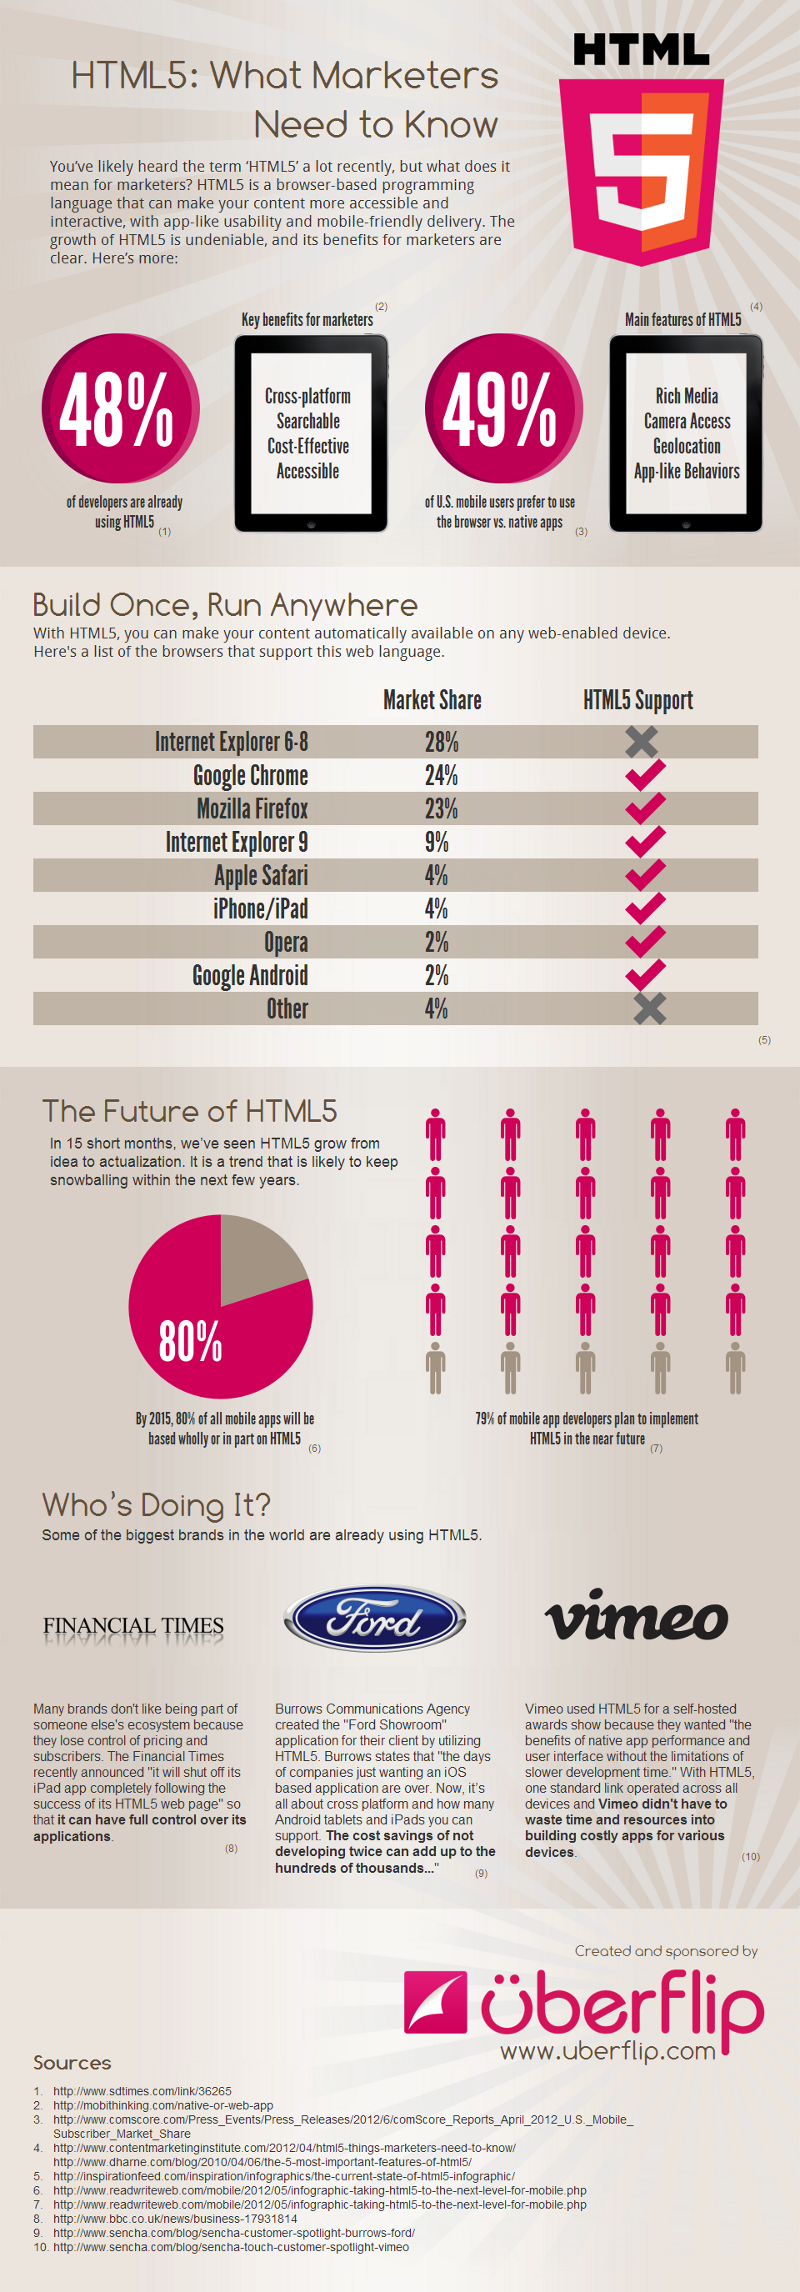 HTML 5 Browser Support1 HTML 5 Browser Support and Compatibility Chart